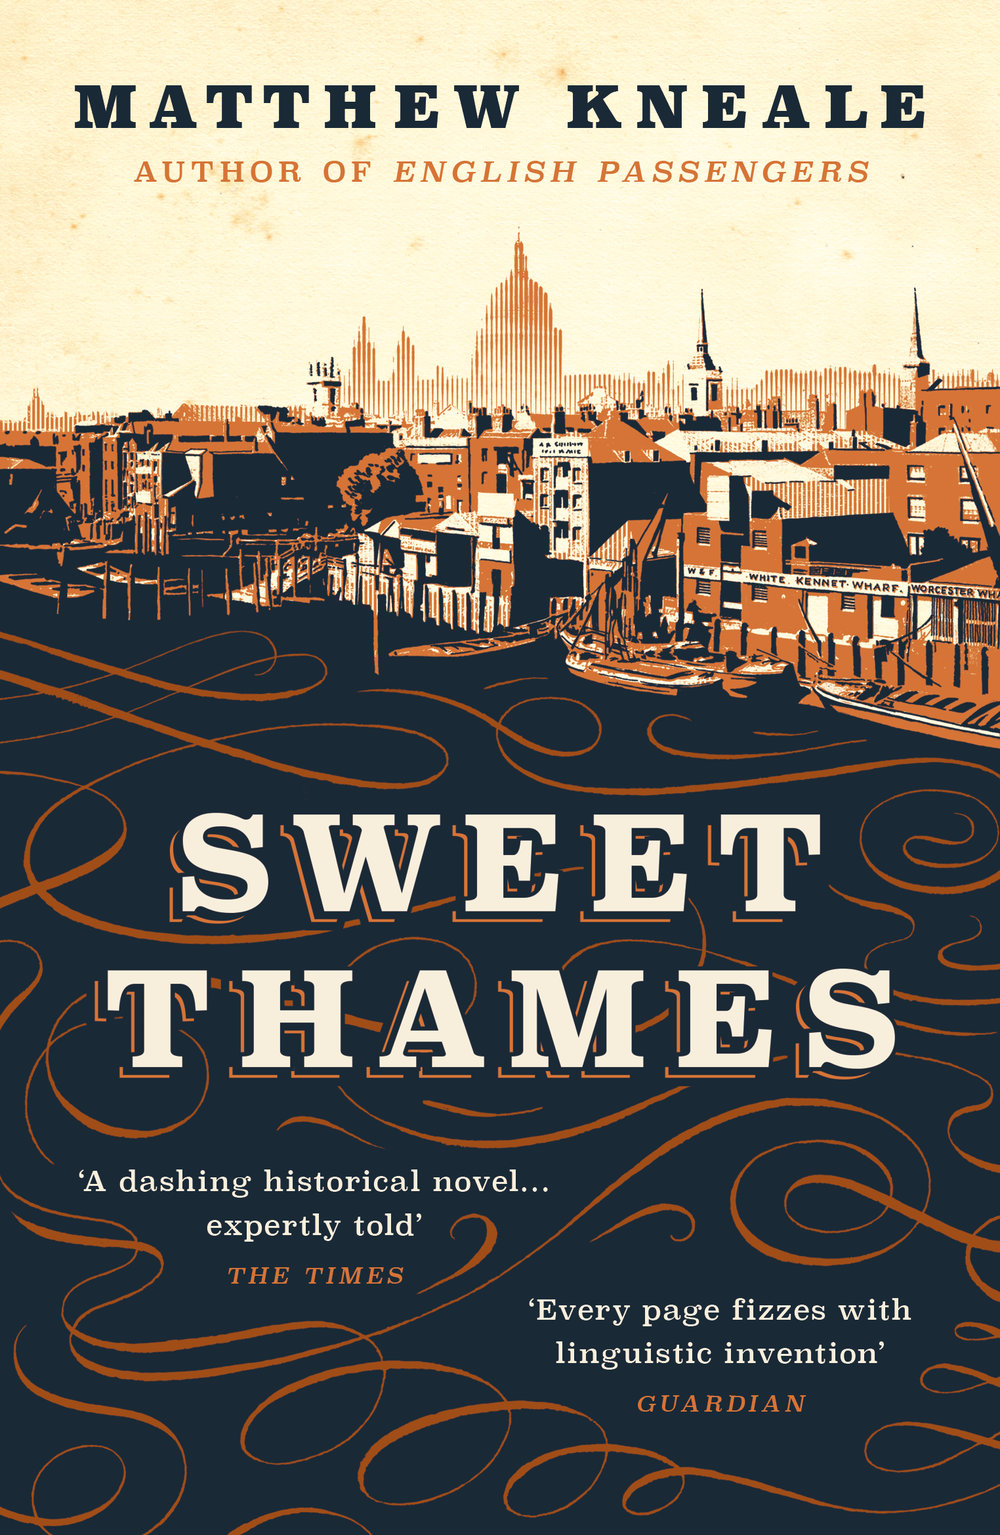 Sweet Thames cover.jpg